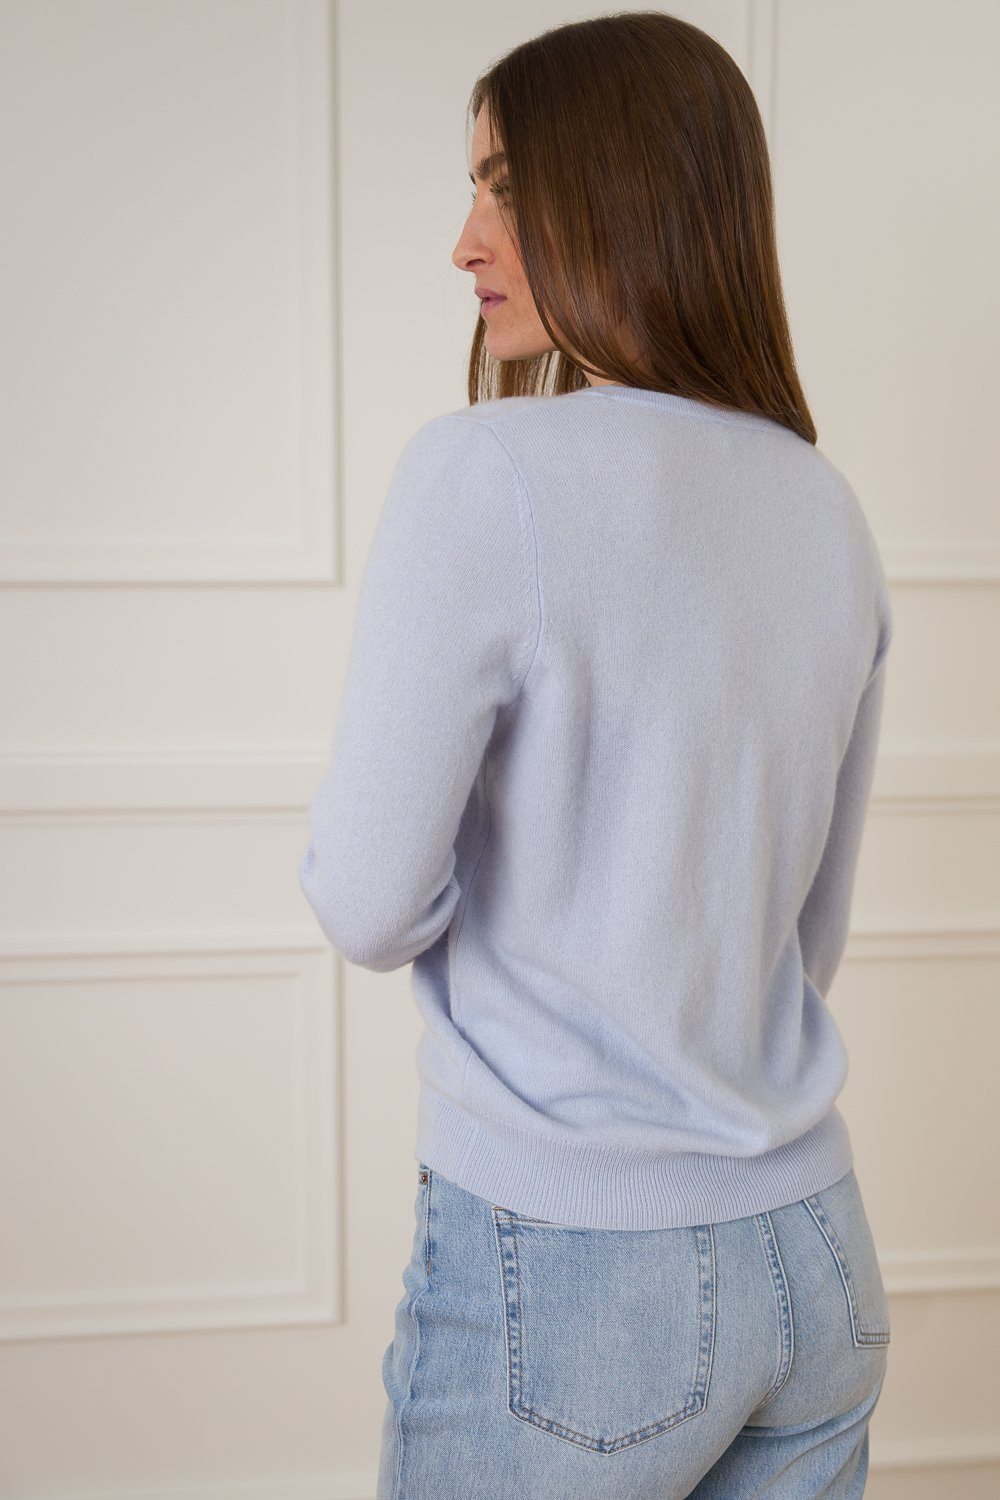 Lailabeth Cashmere Cardigan - Baby Blue